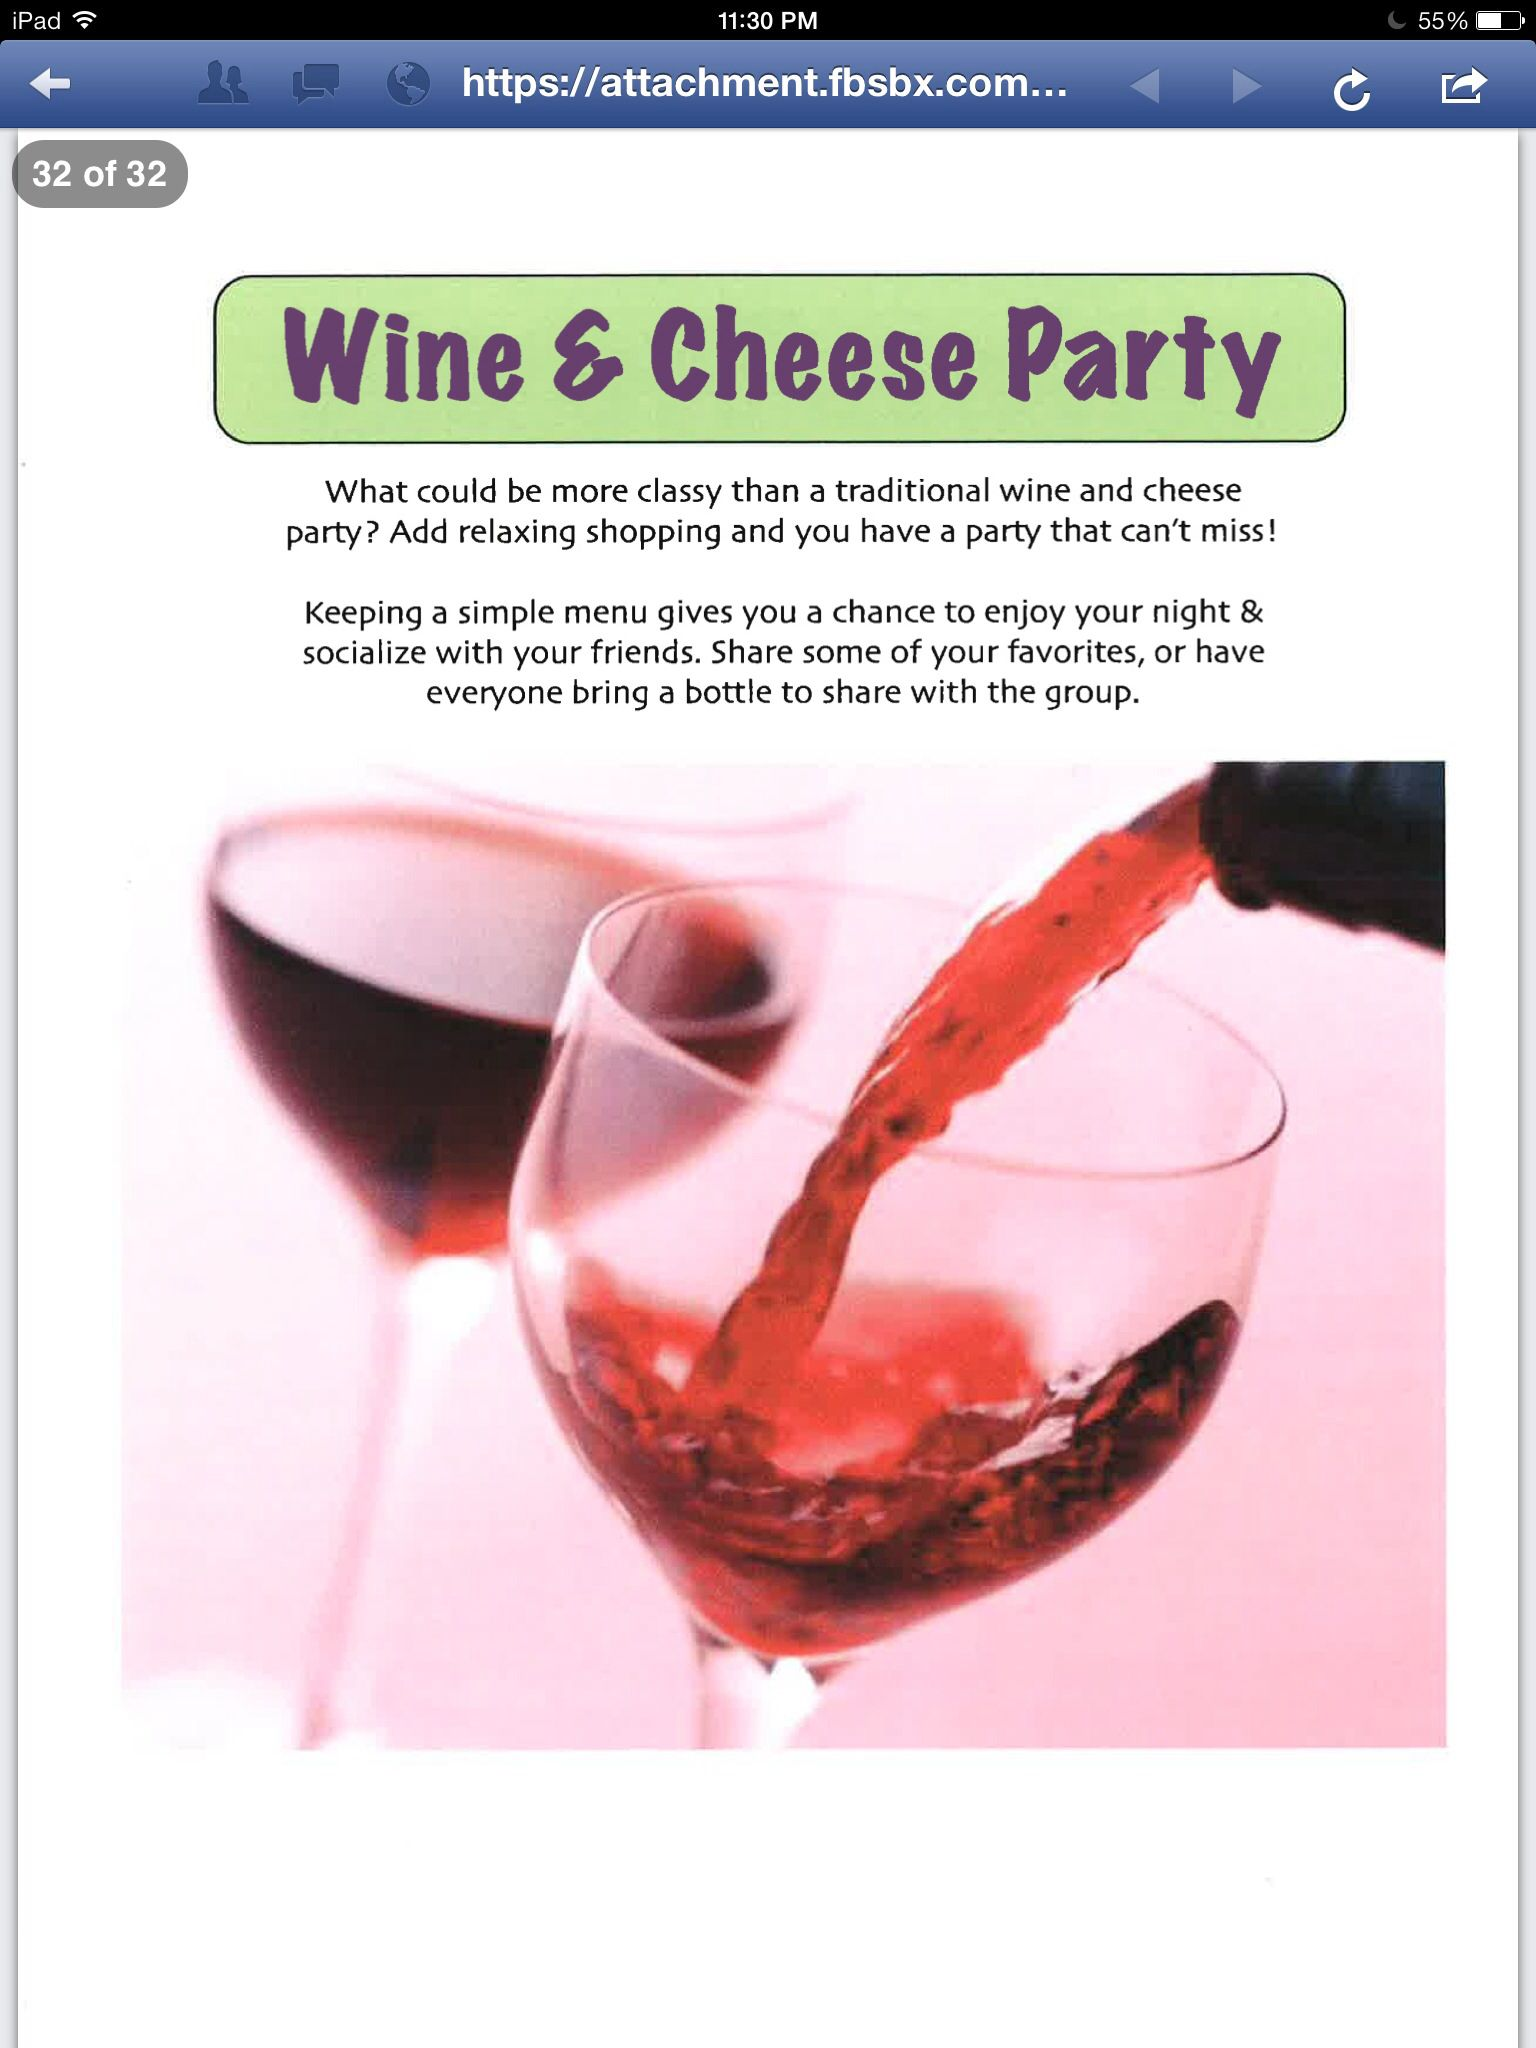 Theme Party Ideas For Scentsy Pick A Party Pick A Theme Let S Party Www Kellalange Scentsy Us Scentsy Wine And Cheese Party Party Hostess